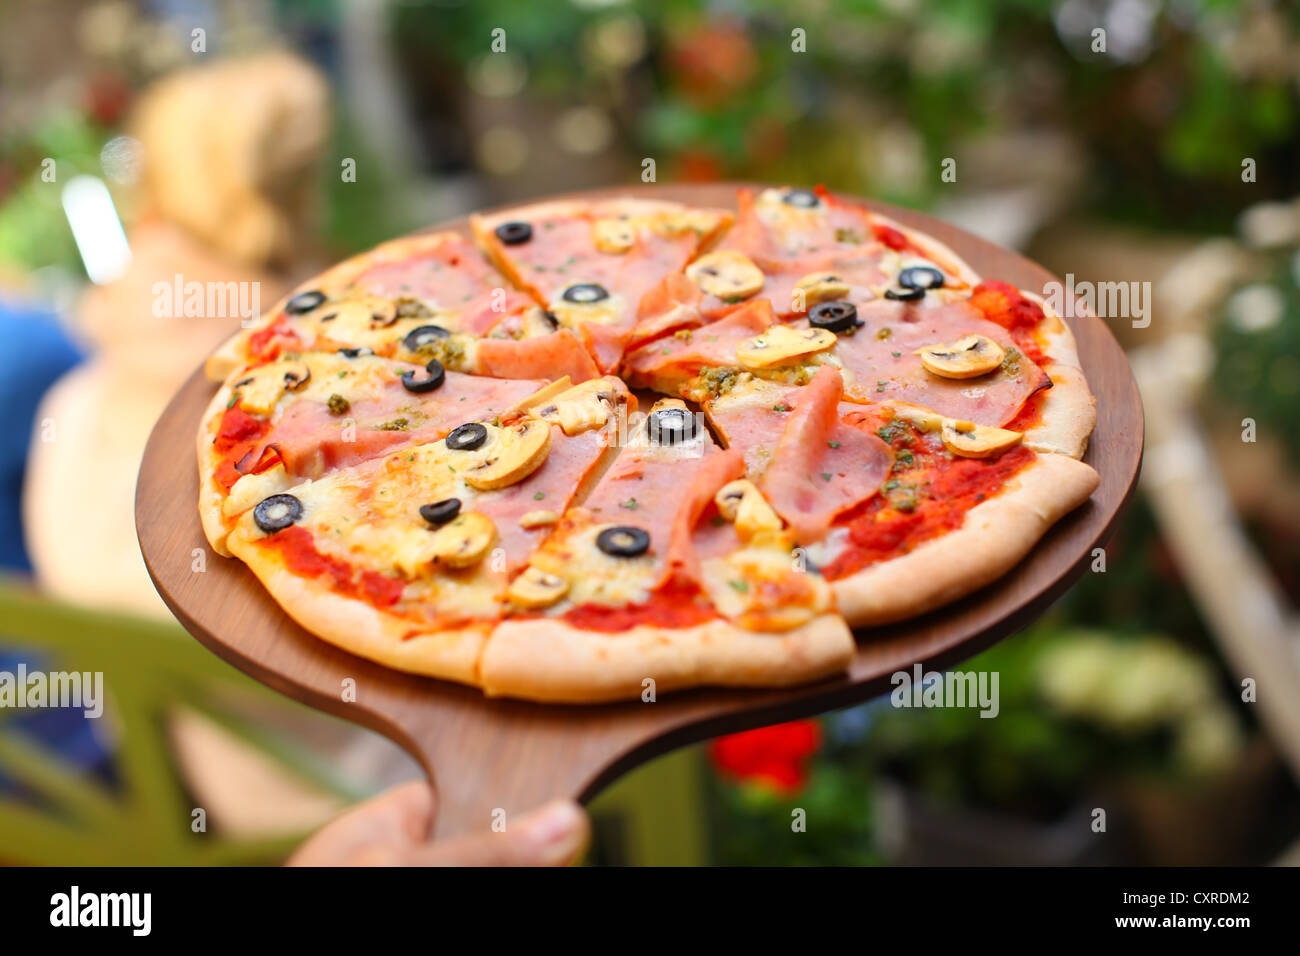 Whole pizza sliced in portions on pizza board - Stock Image